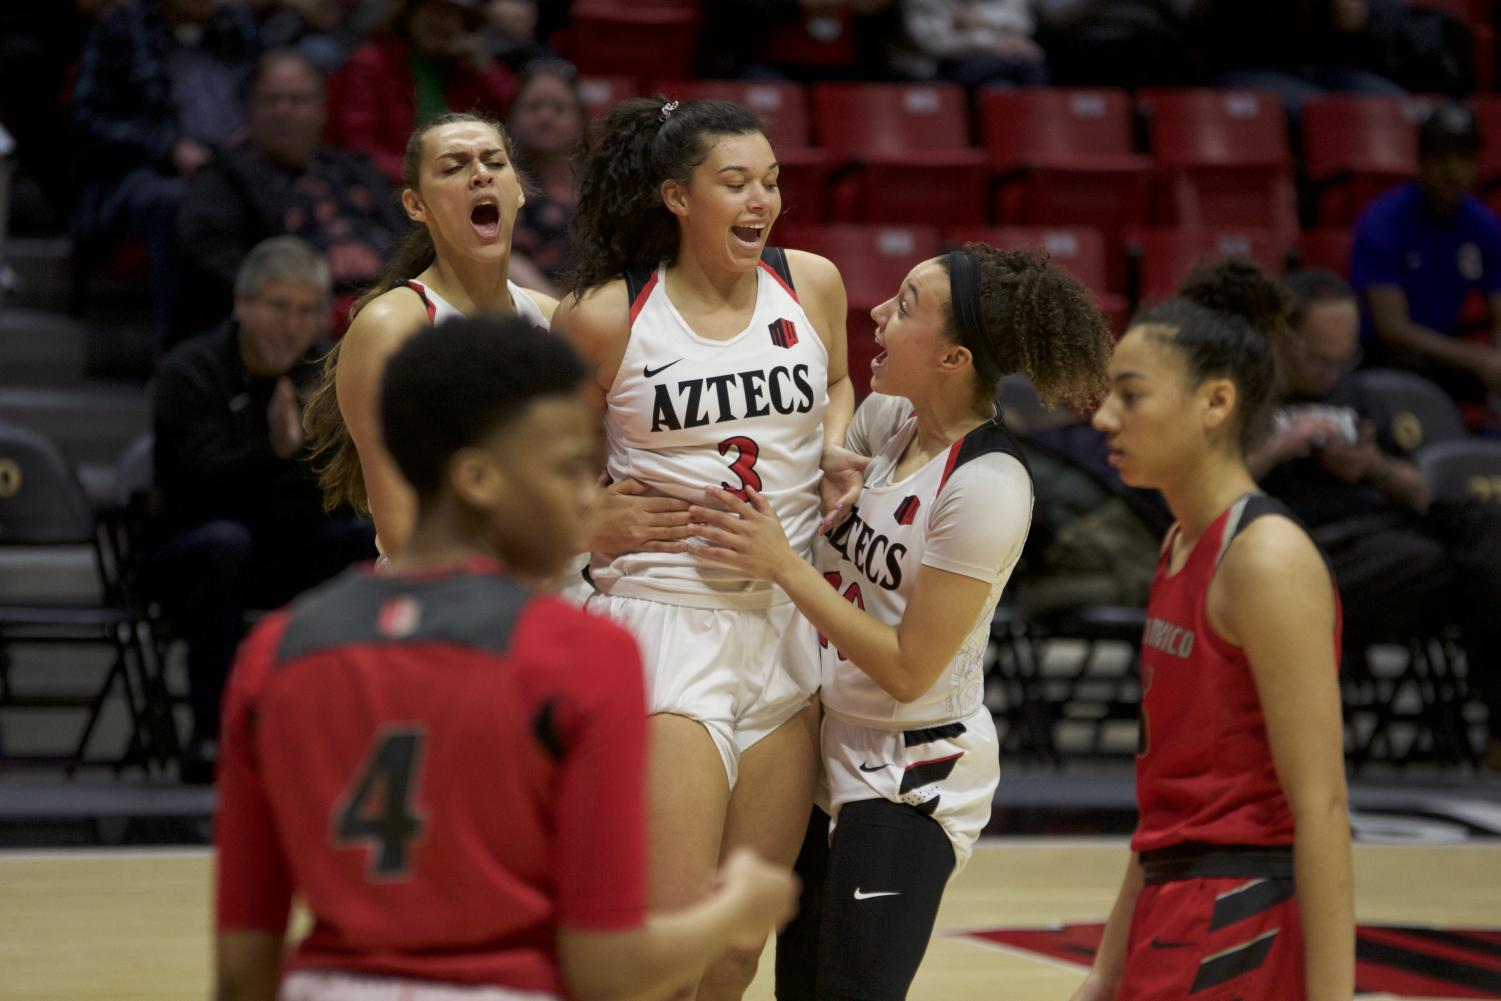 SDSU players celebrating during its 61-59 victory over New Mexico on Feb. 6 at Viejas Arena.